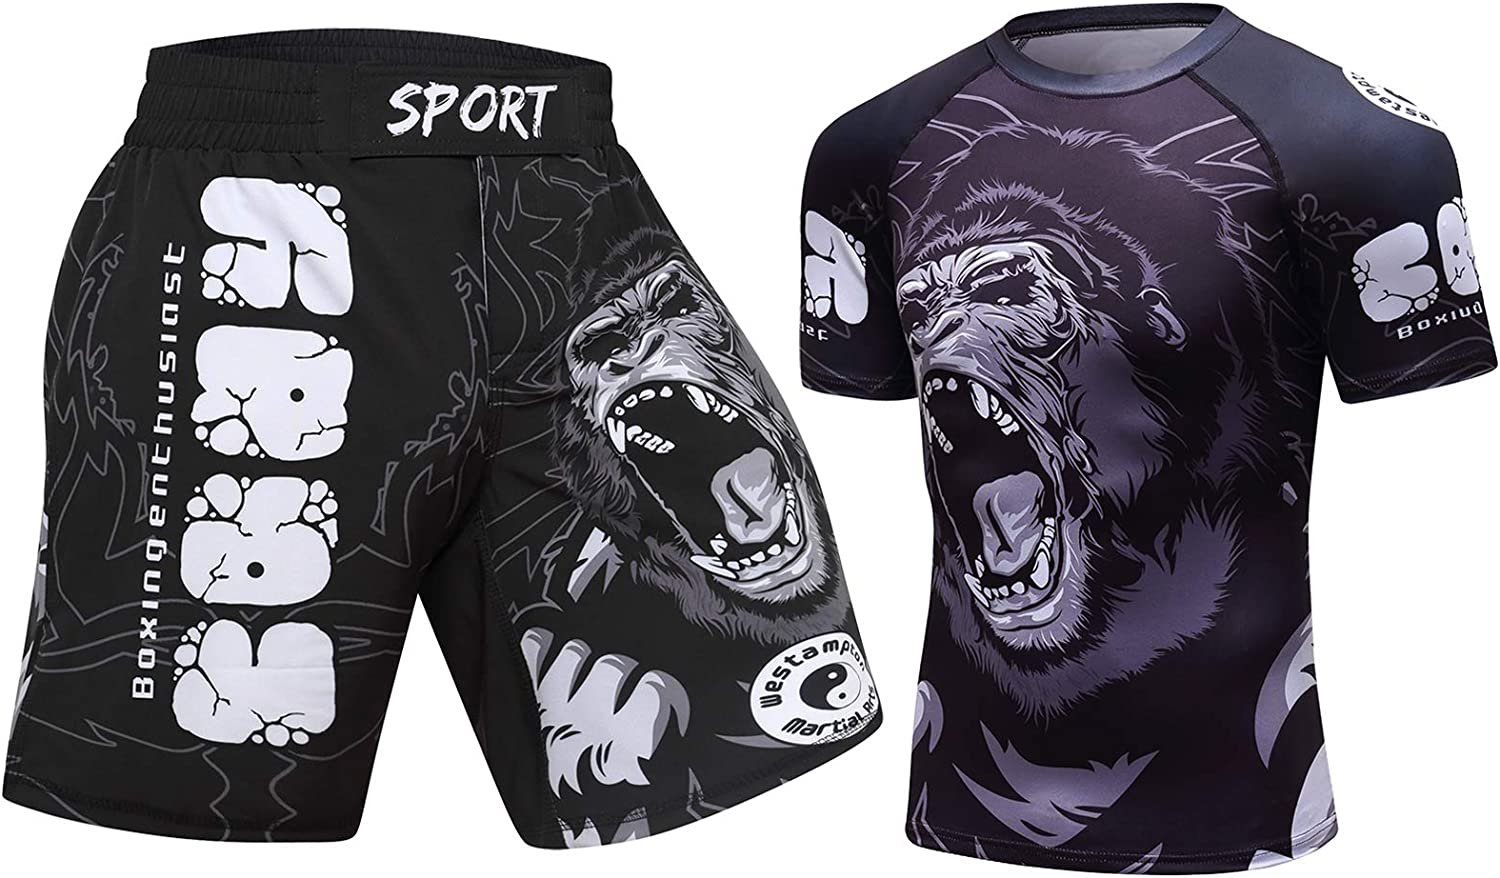 huan Fashion Printing Casual Shirts and MMA Shorts Sports for 2piece Sleeve Suit Men's Sportswear